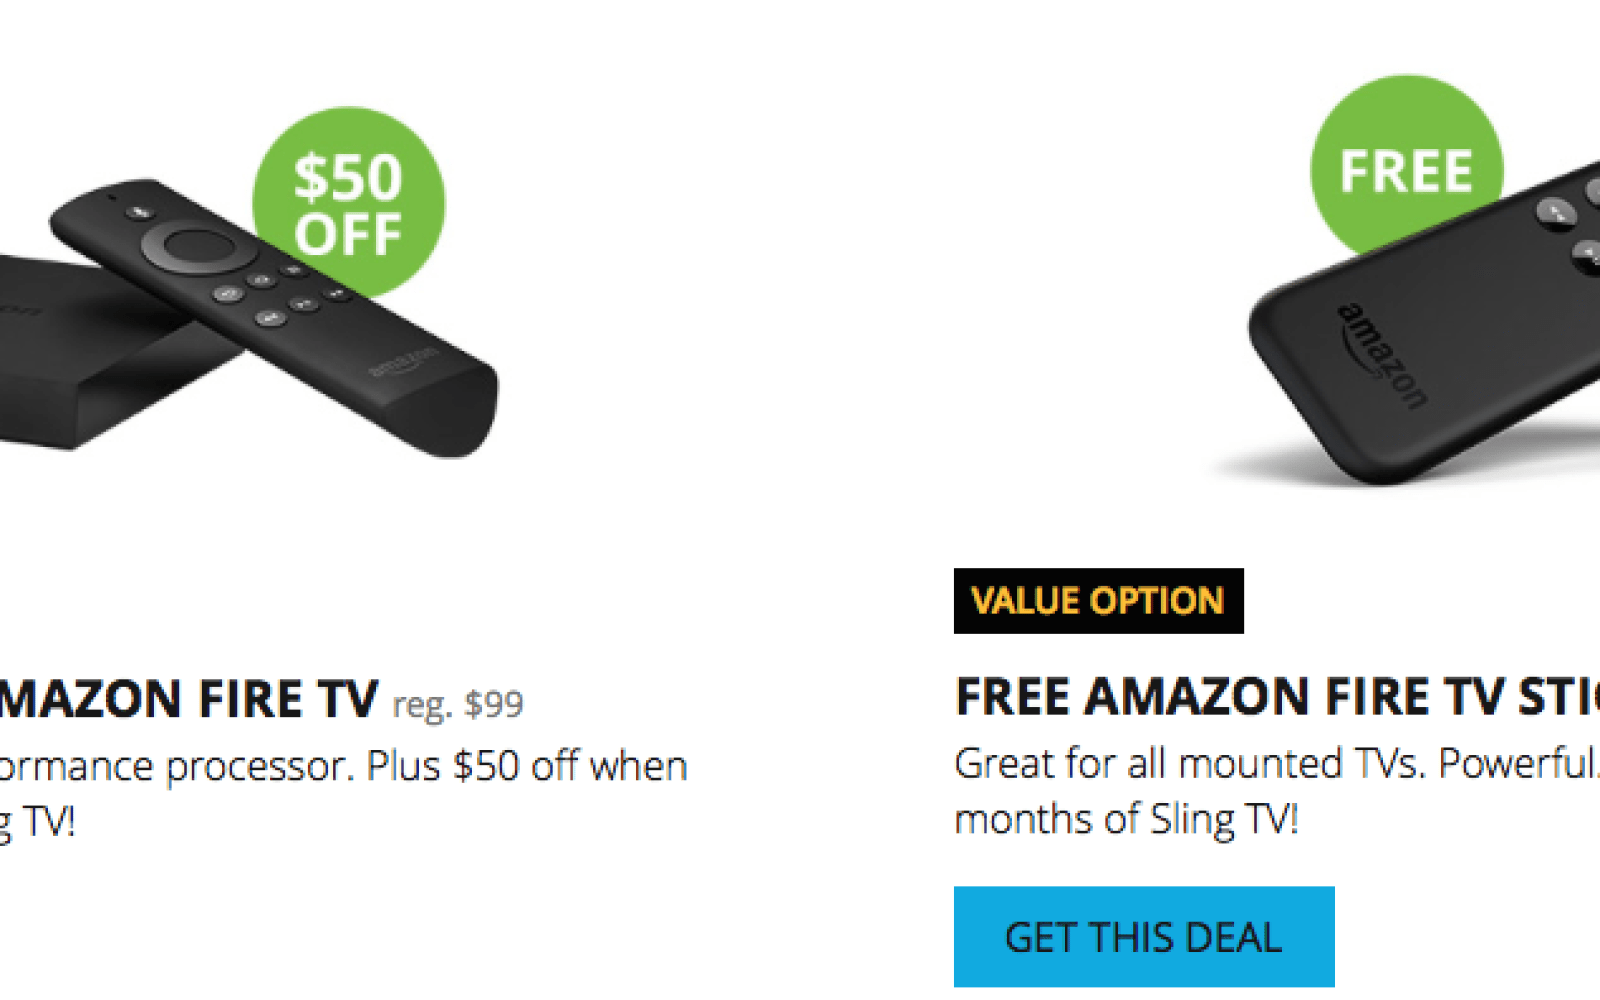 Amazon Fire Tv 9to5toys Ama Zon Plus Get A Free Roku Streaming Stick Or 50 Off 3 When You Sign Up For Sling